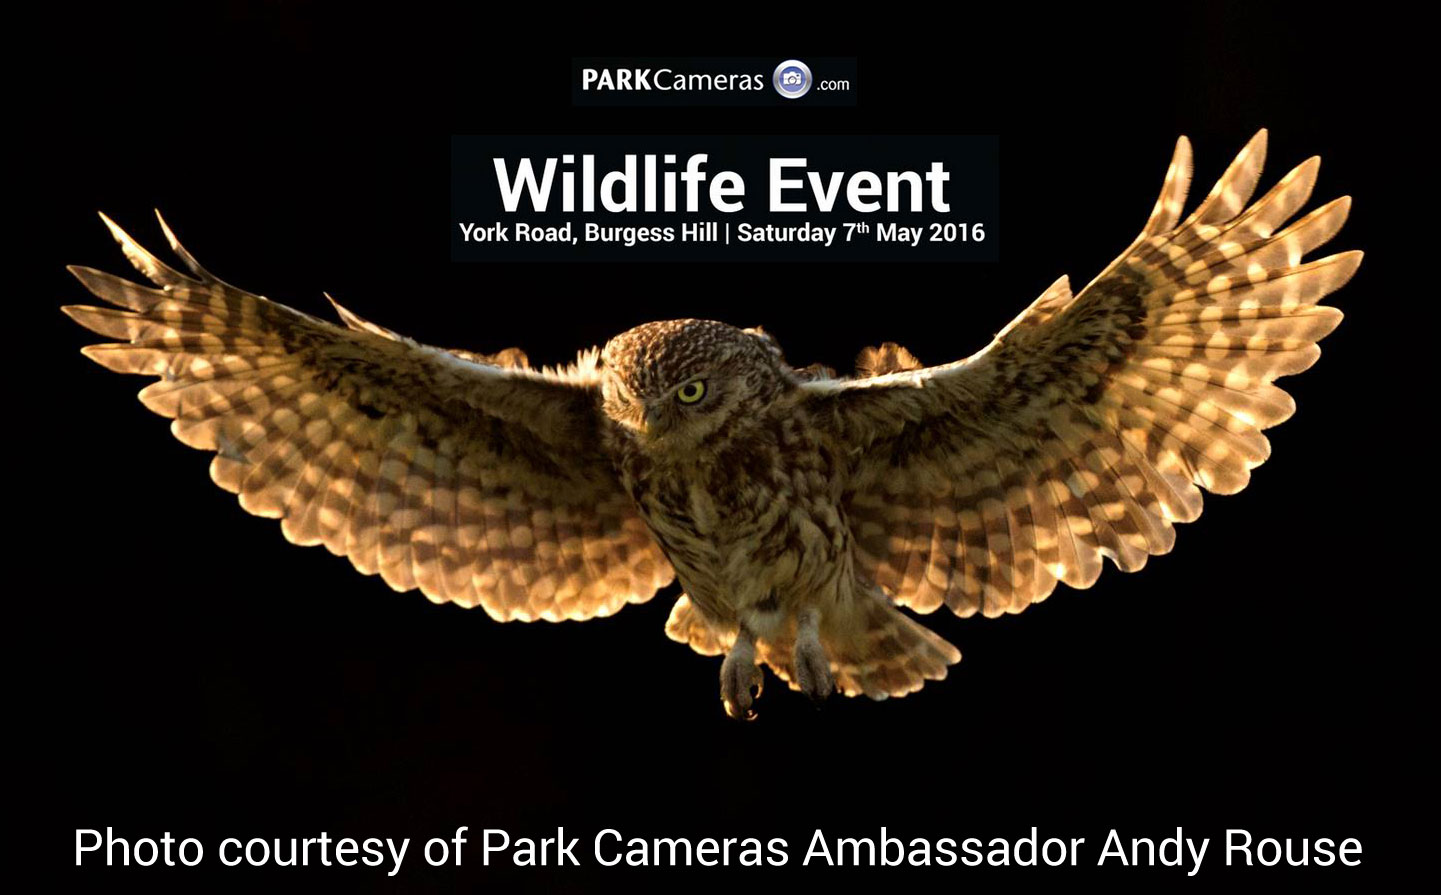 Park Cameras to celebrate wildlife photography on 7 May